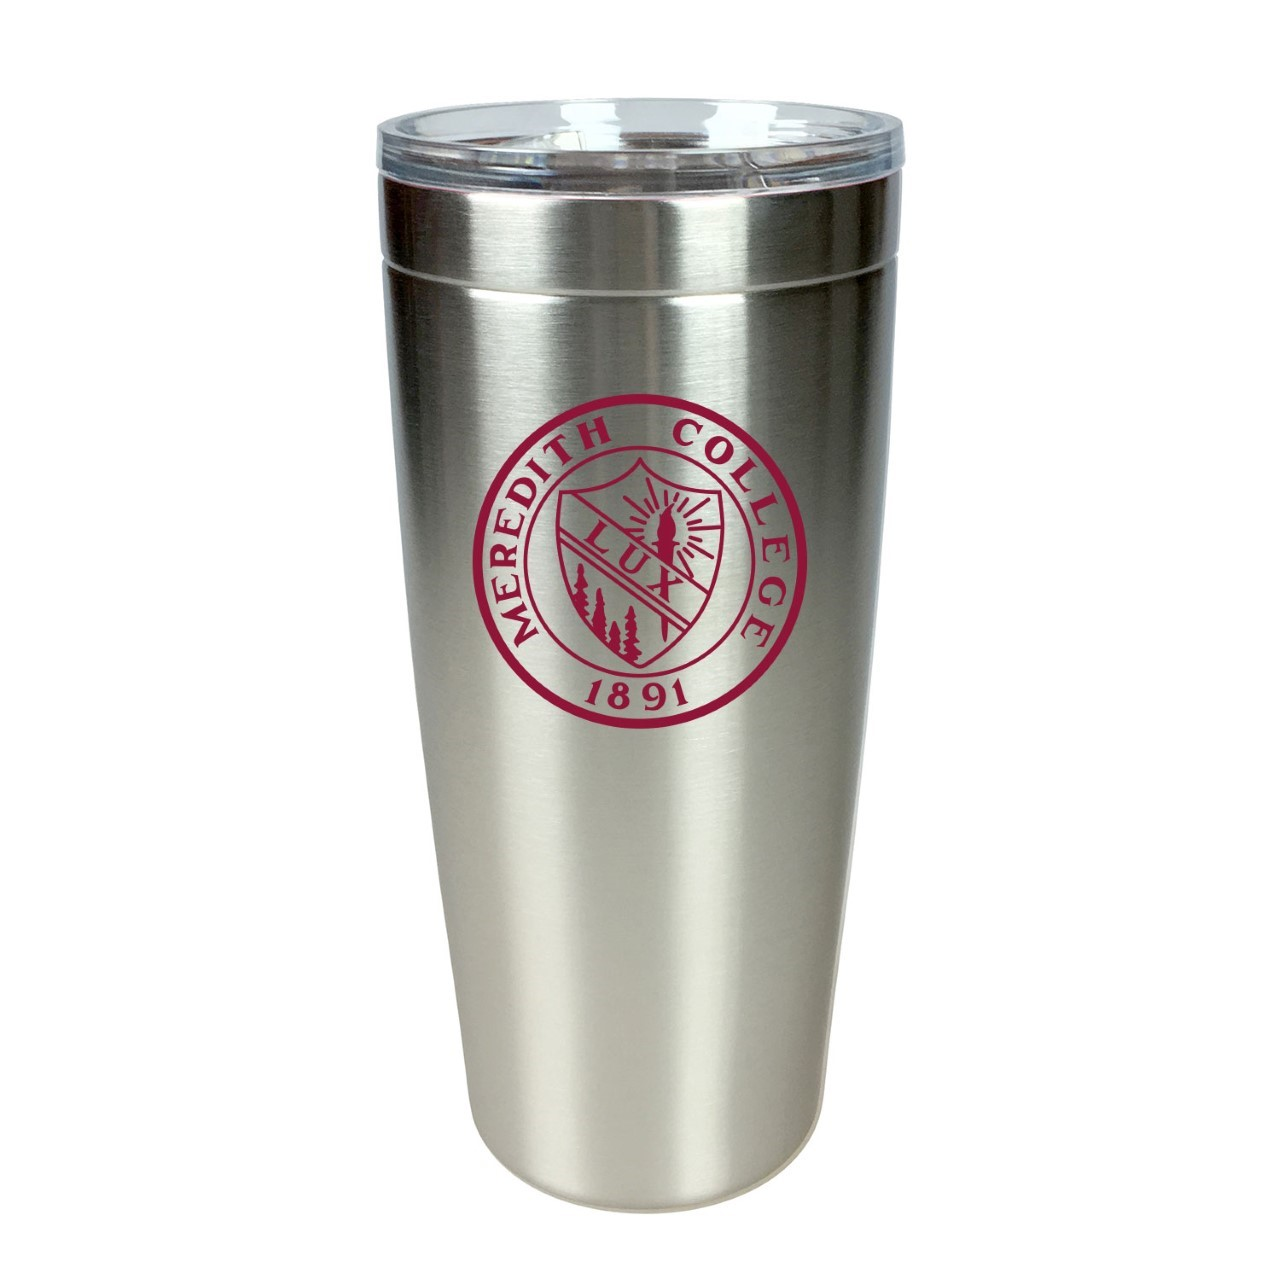 Image for the Viking Nova Tumbler, 20 oz. product